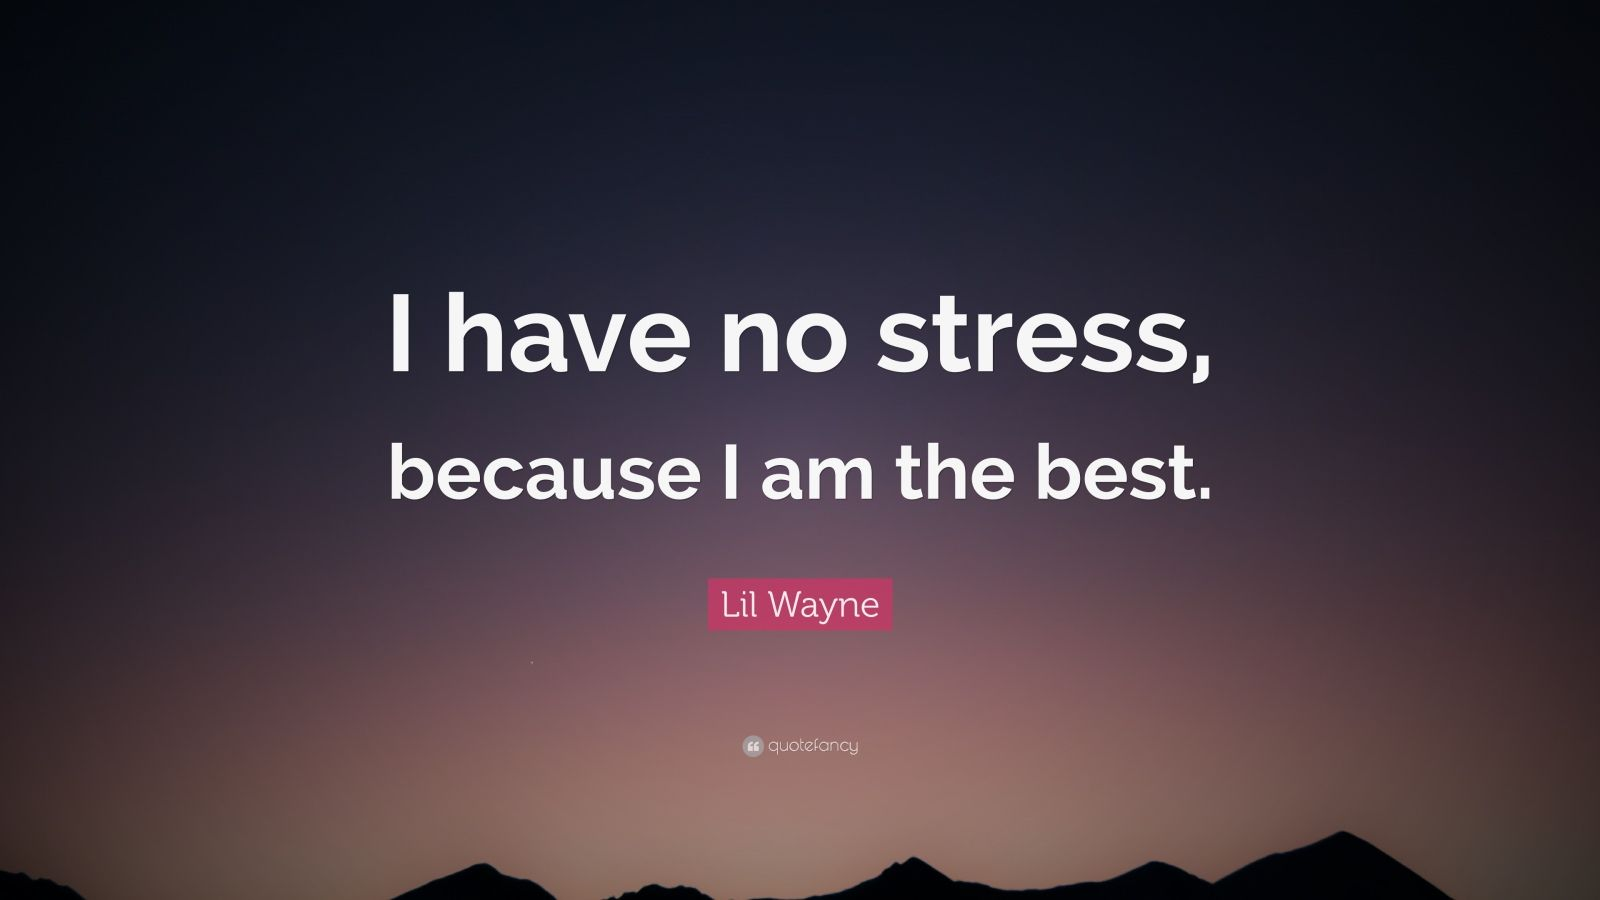 Football Motivational Quotes Wallpaper Lil Wayne Quote I Have No Stress Because I Am The Best